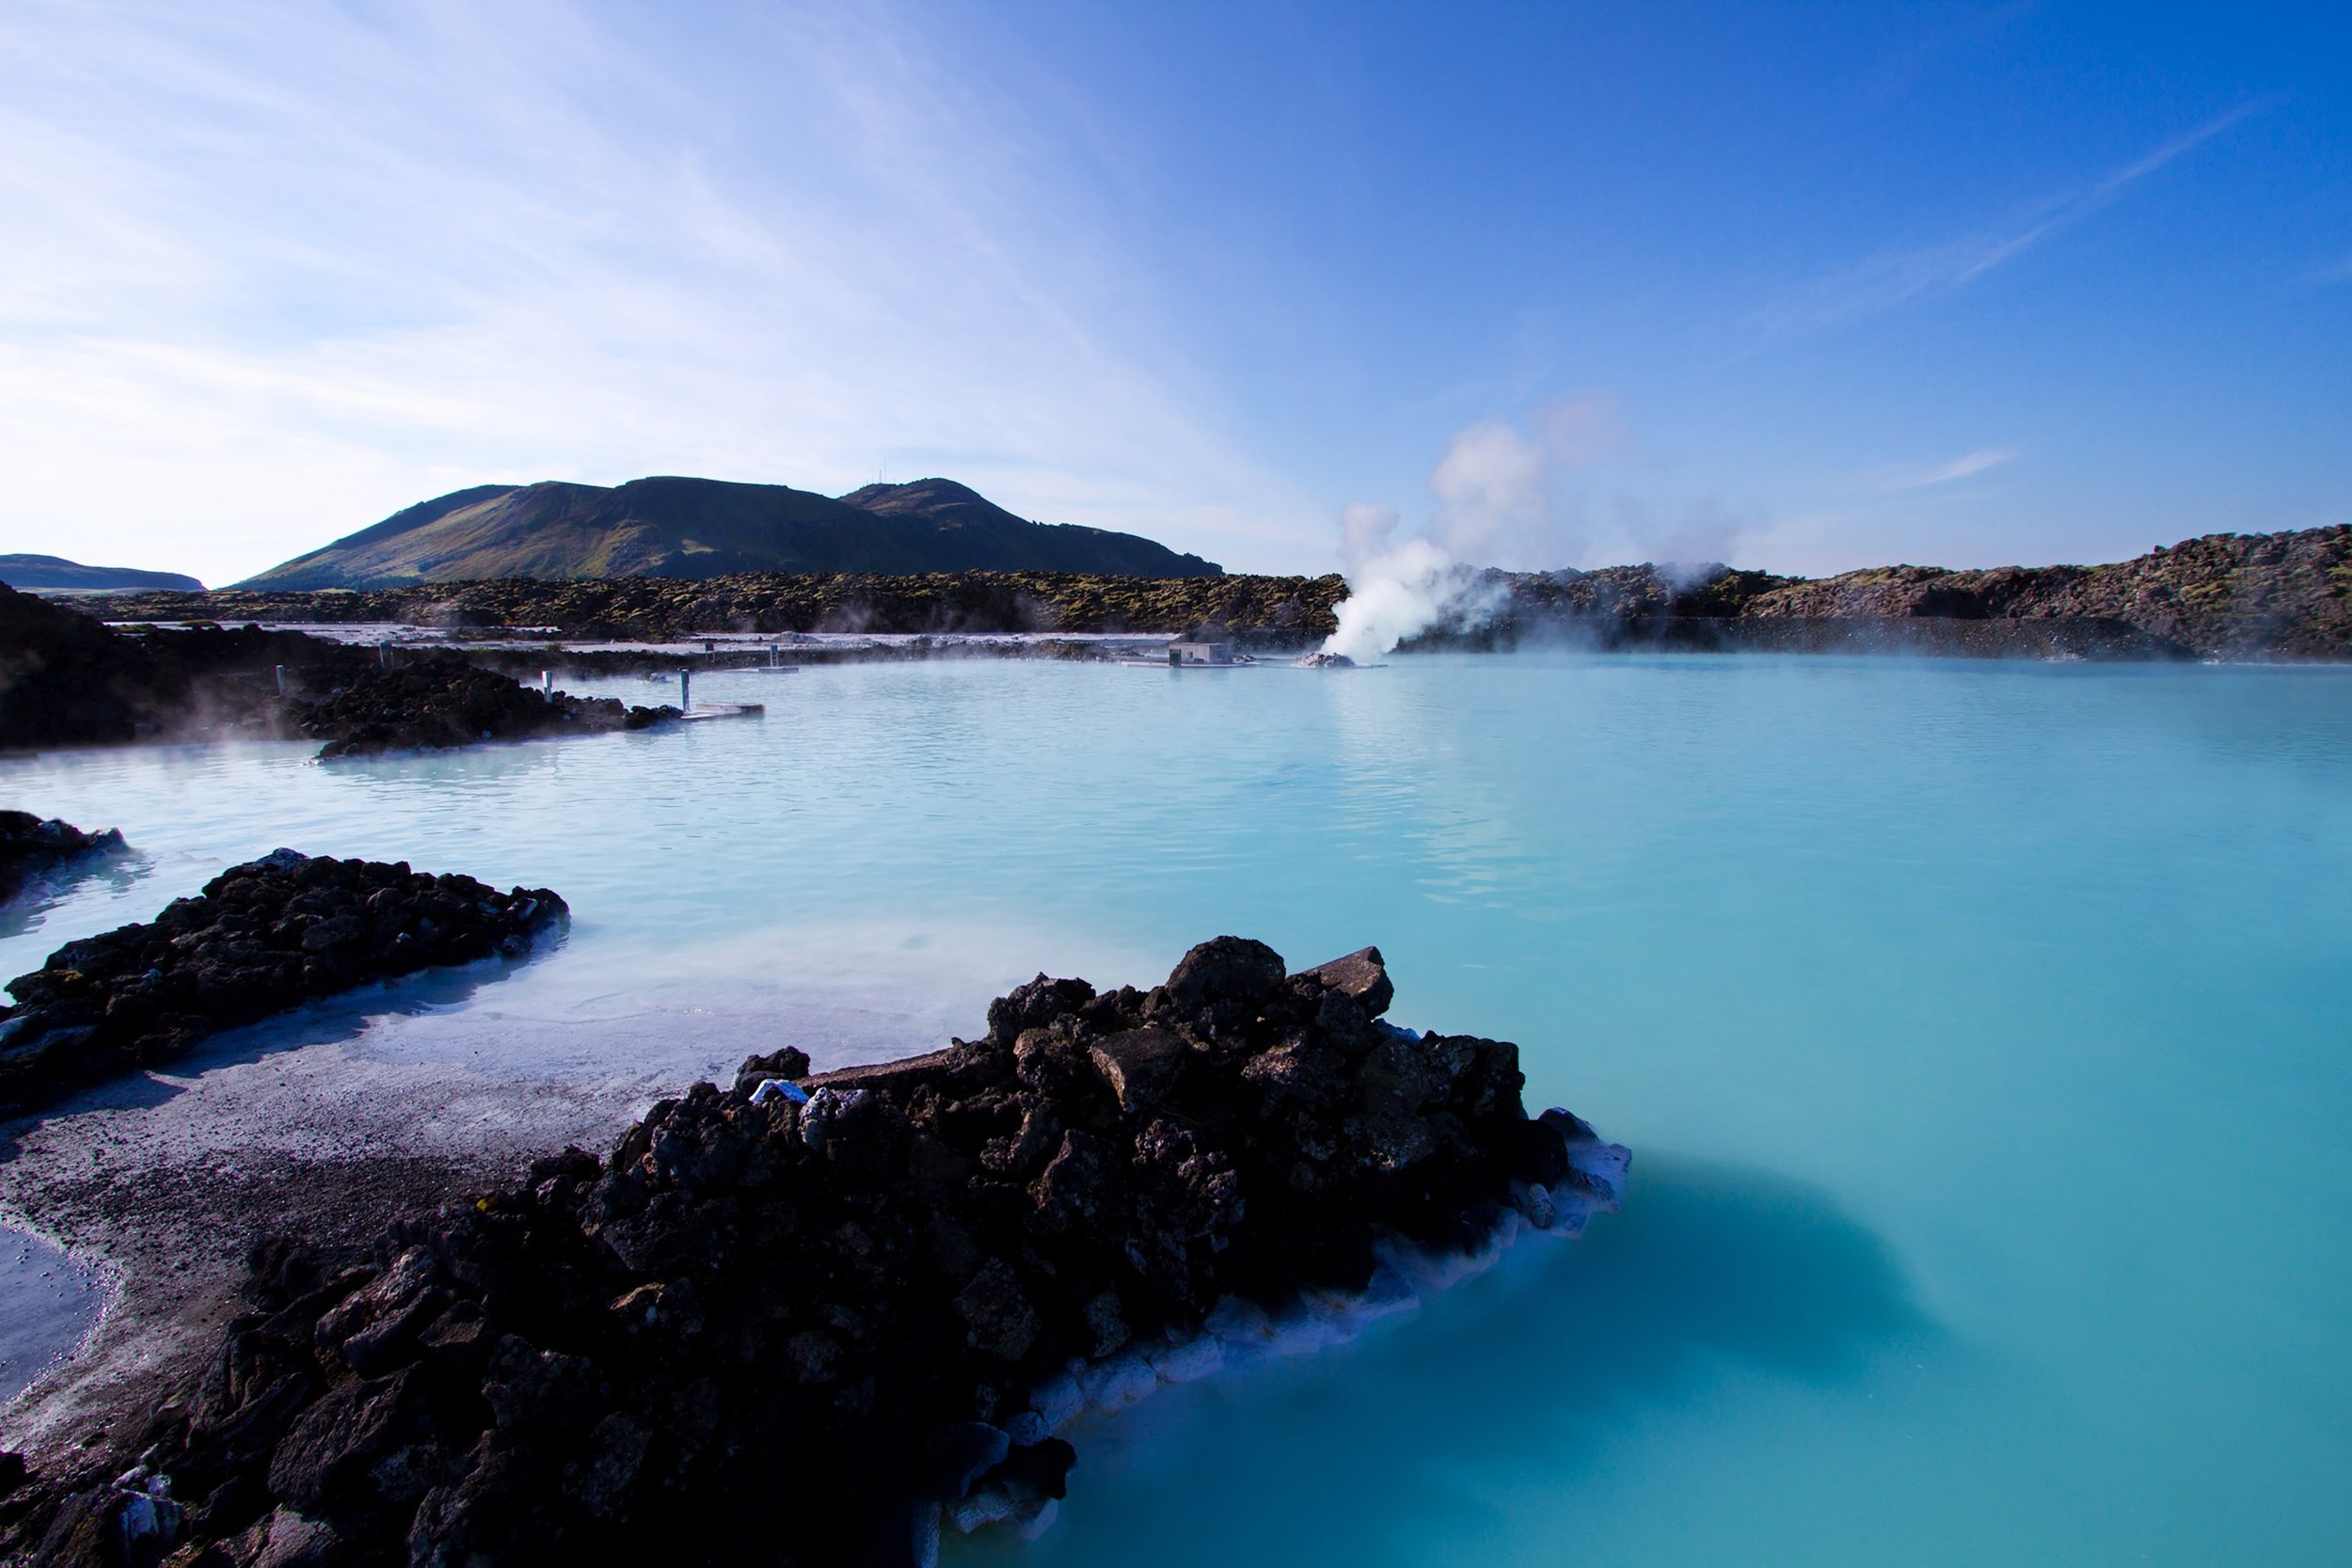 THE BLUE LAGOON - Relax after trekking and ice-climbing in the Icelandic wilderness!On the second day of this fascinating extension trip, you'll celebrate your achievement, enjoying a relaxing afternoon at the famous Blue Lagoon geothermal spa.3 days/2 nightsReg. fee: £95Balance payment: £195